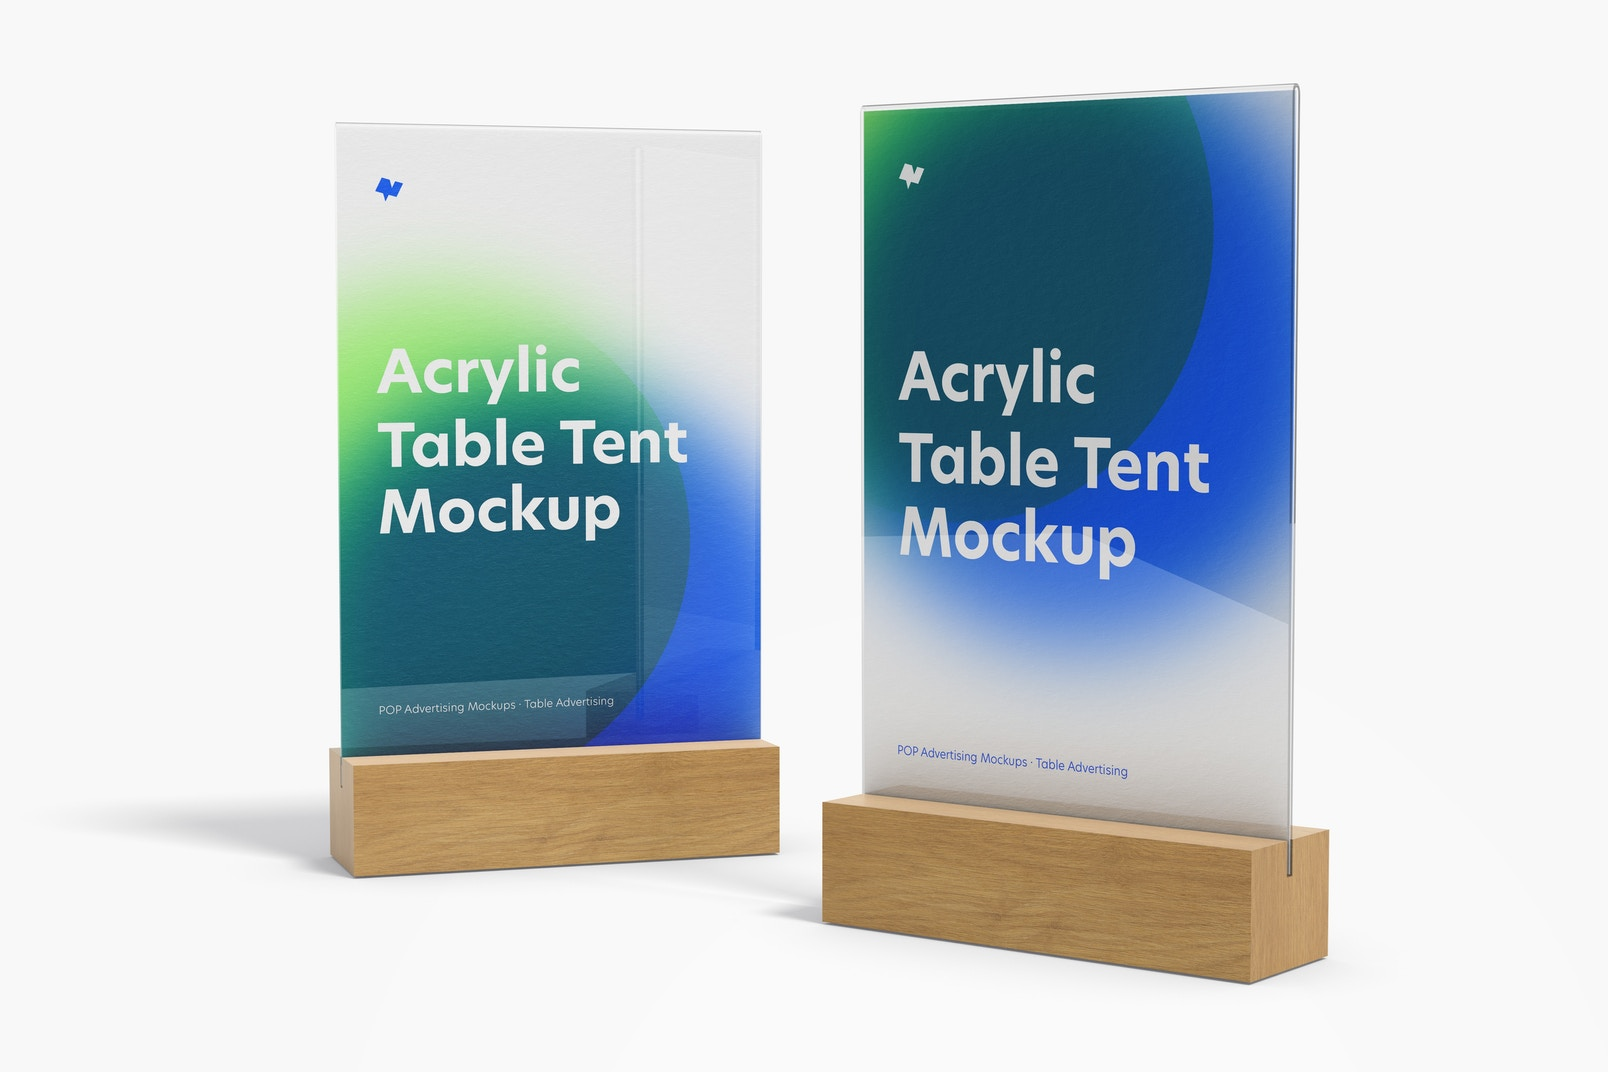 Acrylic Table Tents with Wood Base Mockup, Perspective